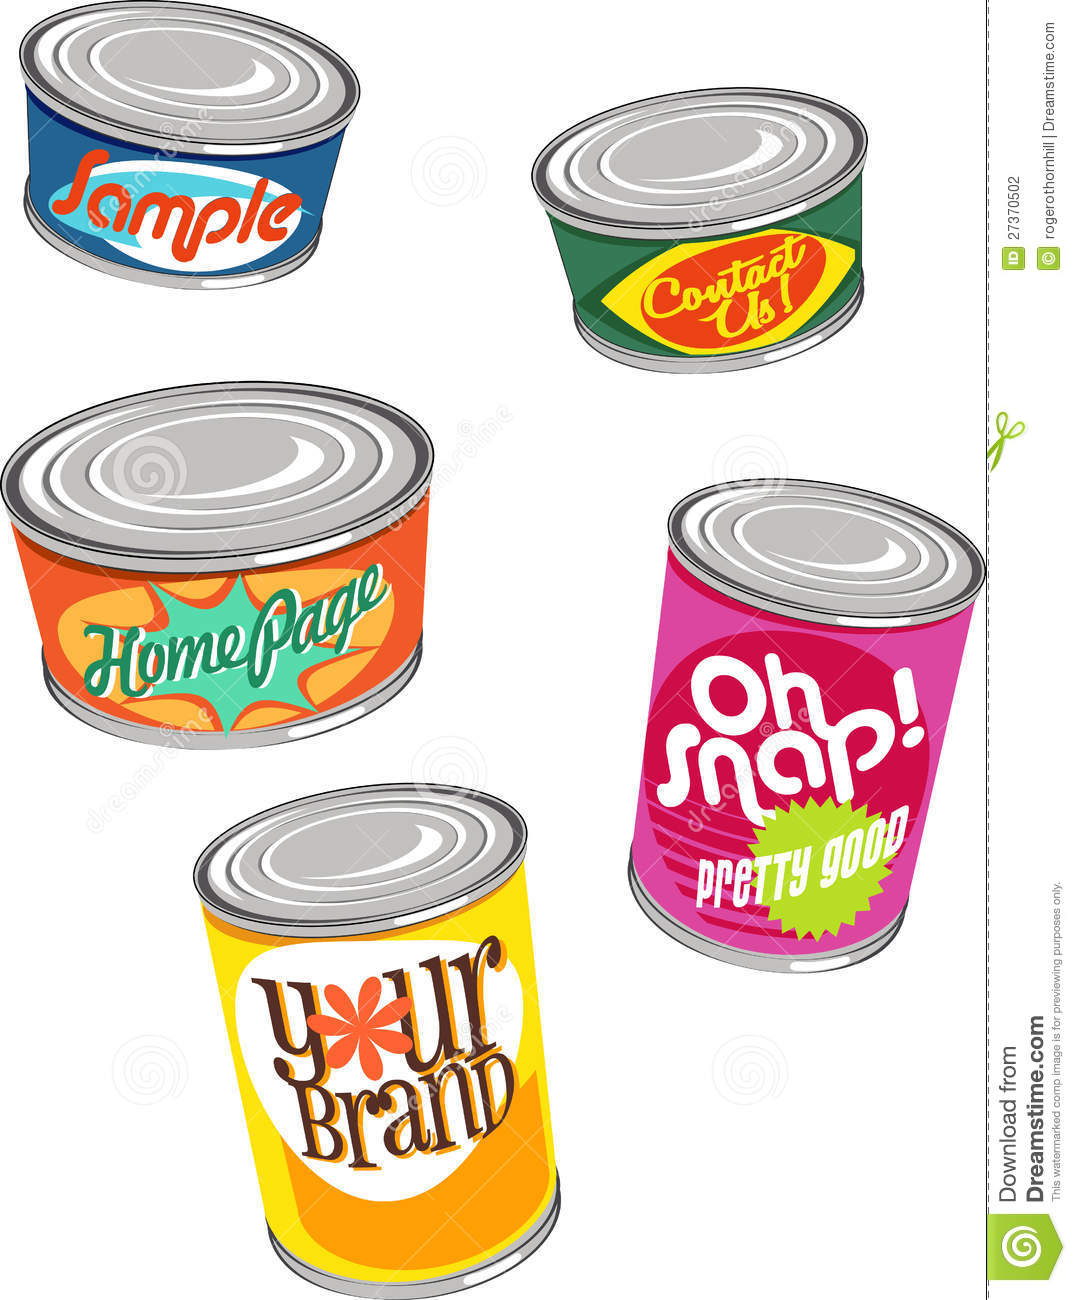 Retro Canned Food Illustrations Stock Photography - Image ...